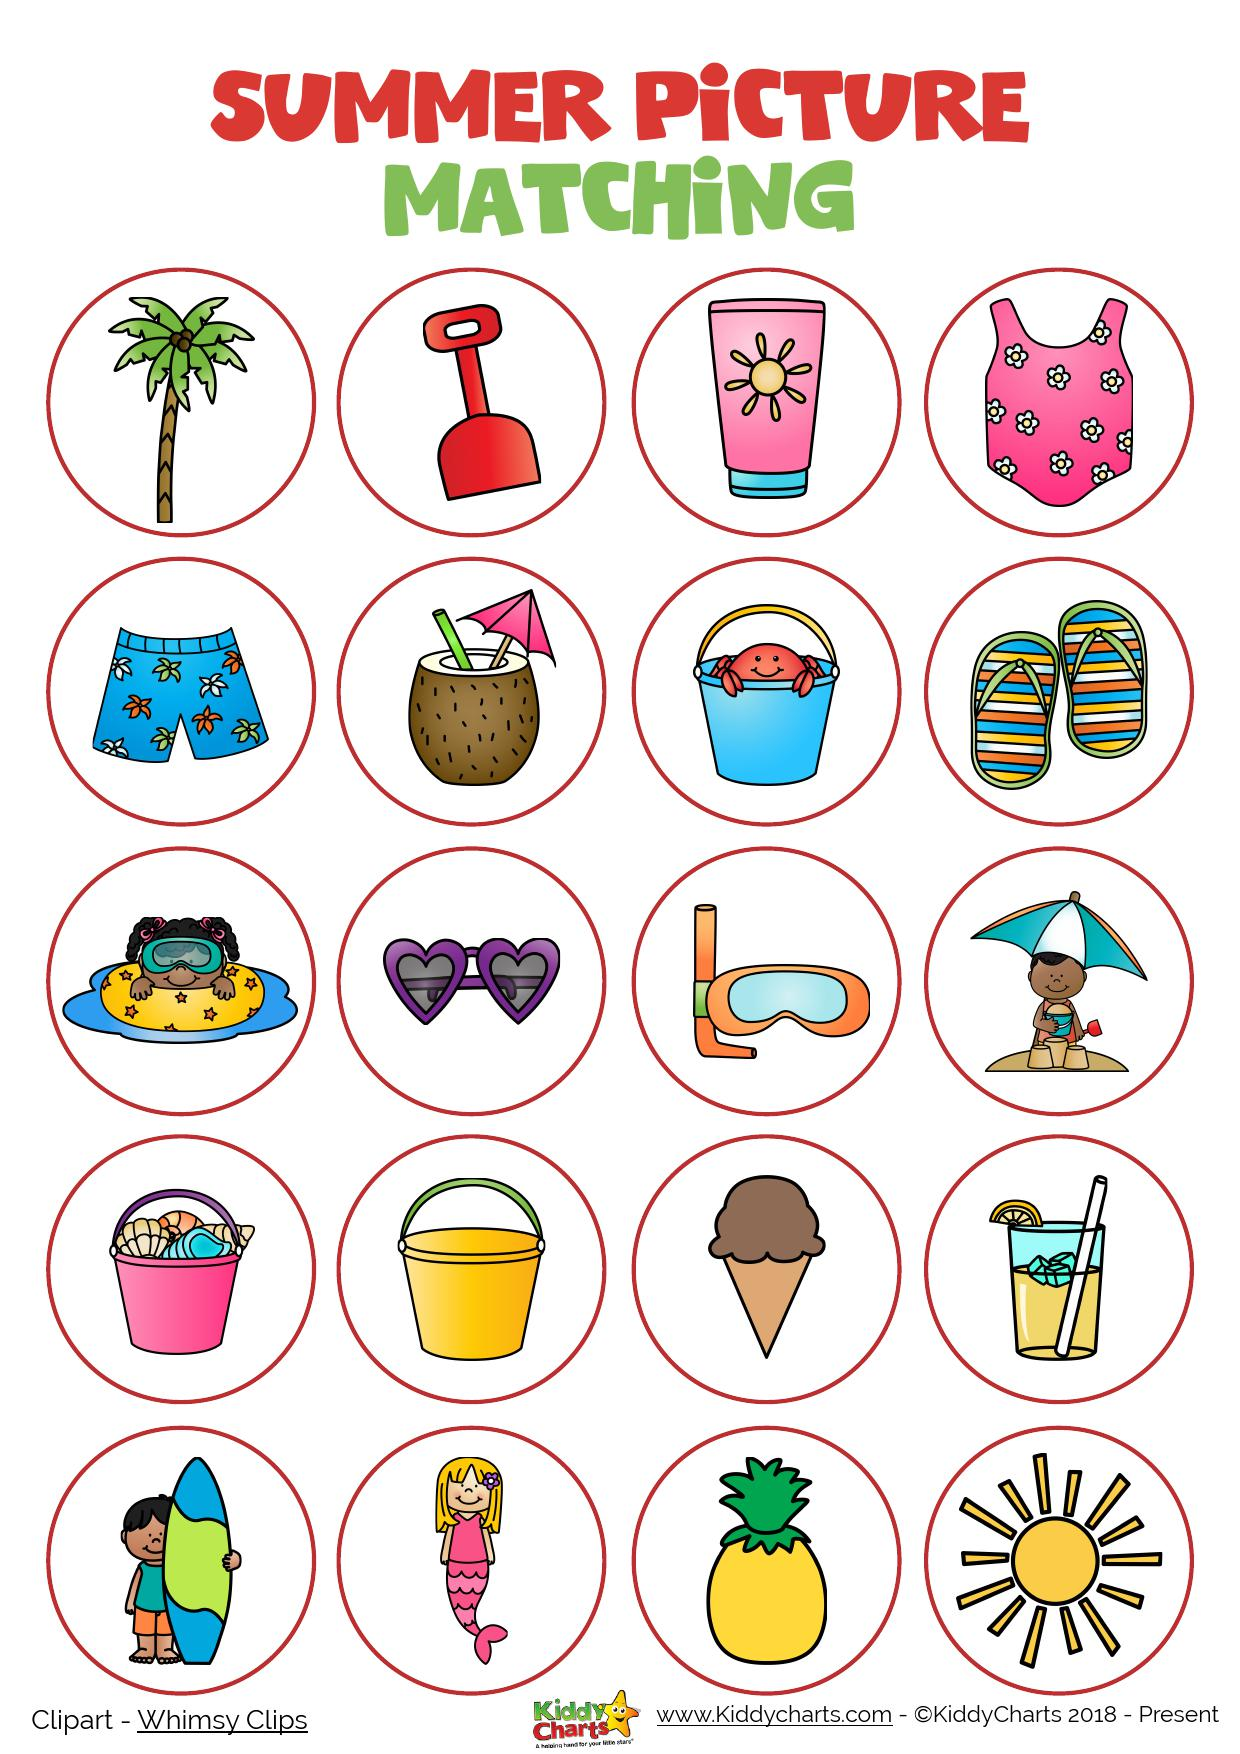 Summer matching picture game for the kids - why not check out the other activities on the site too! #printables #kids #summer